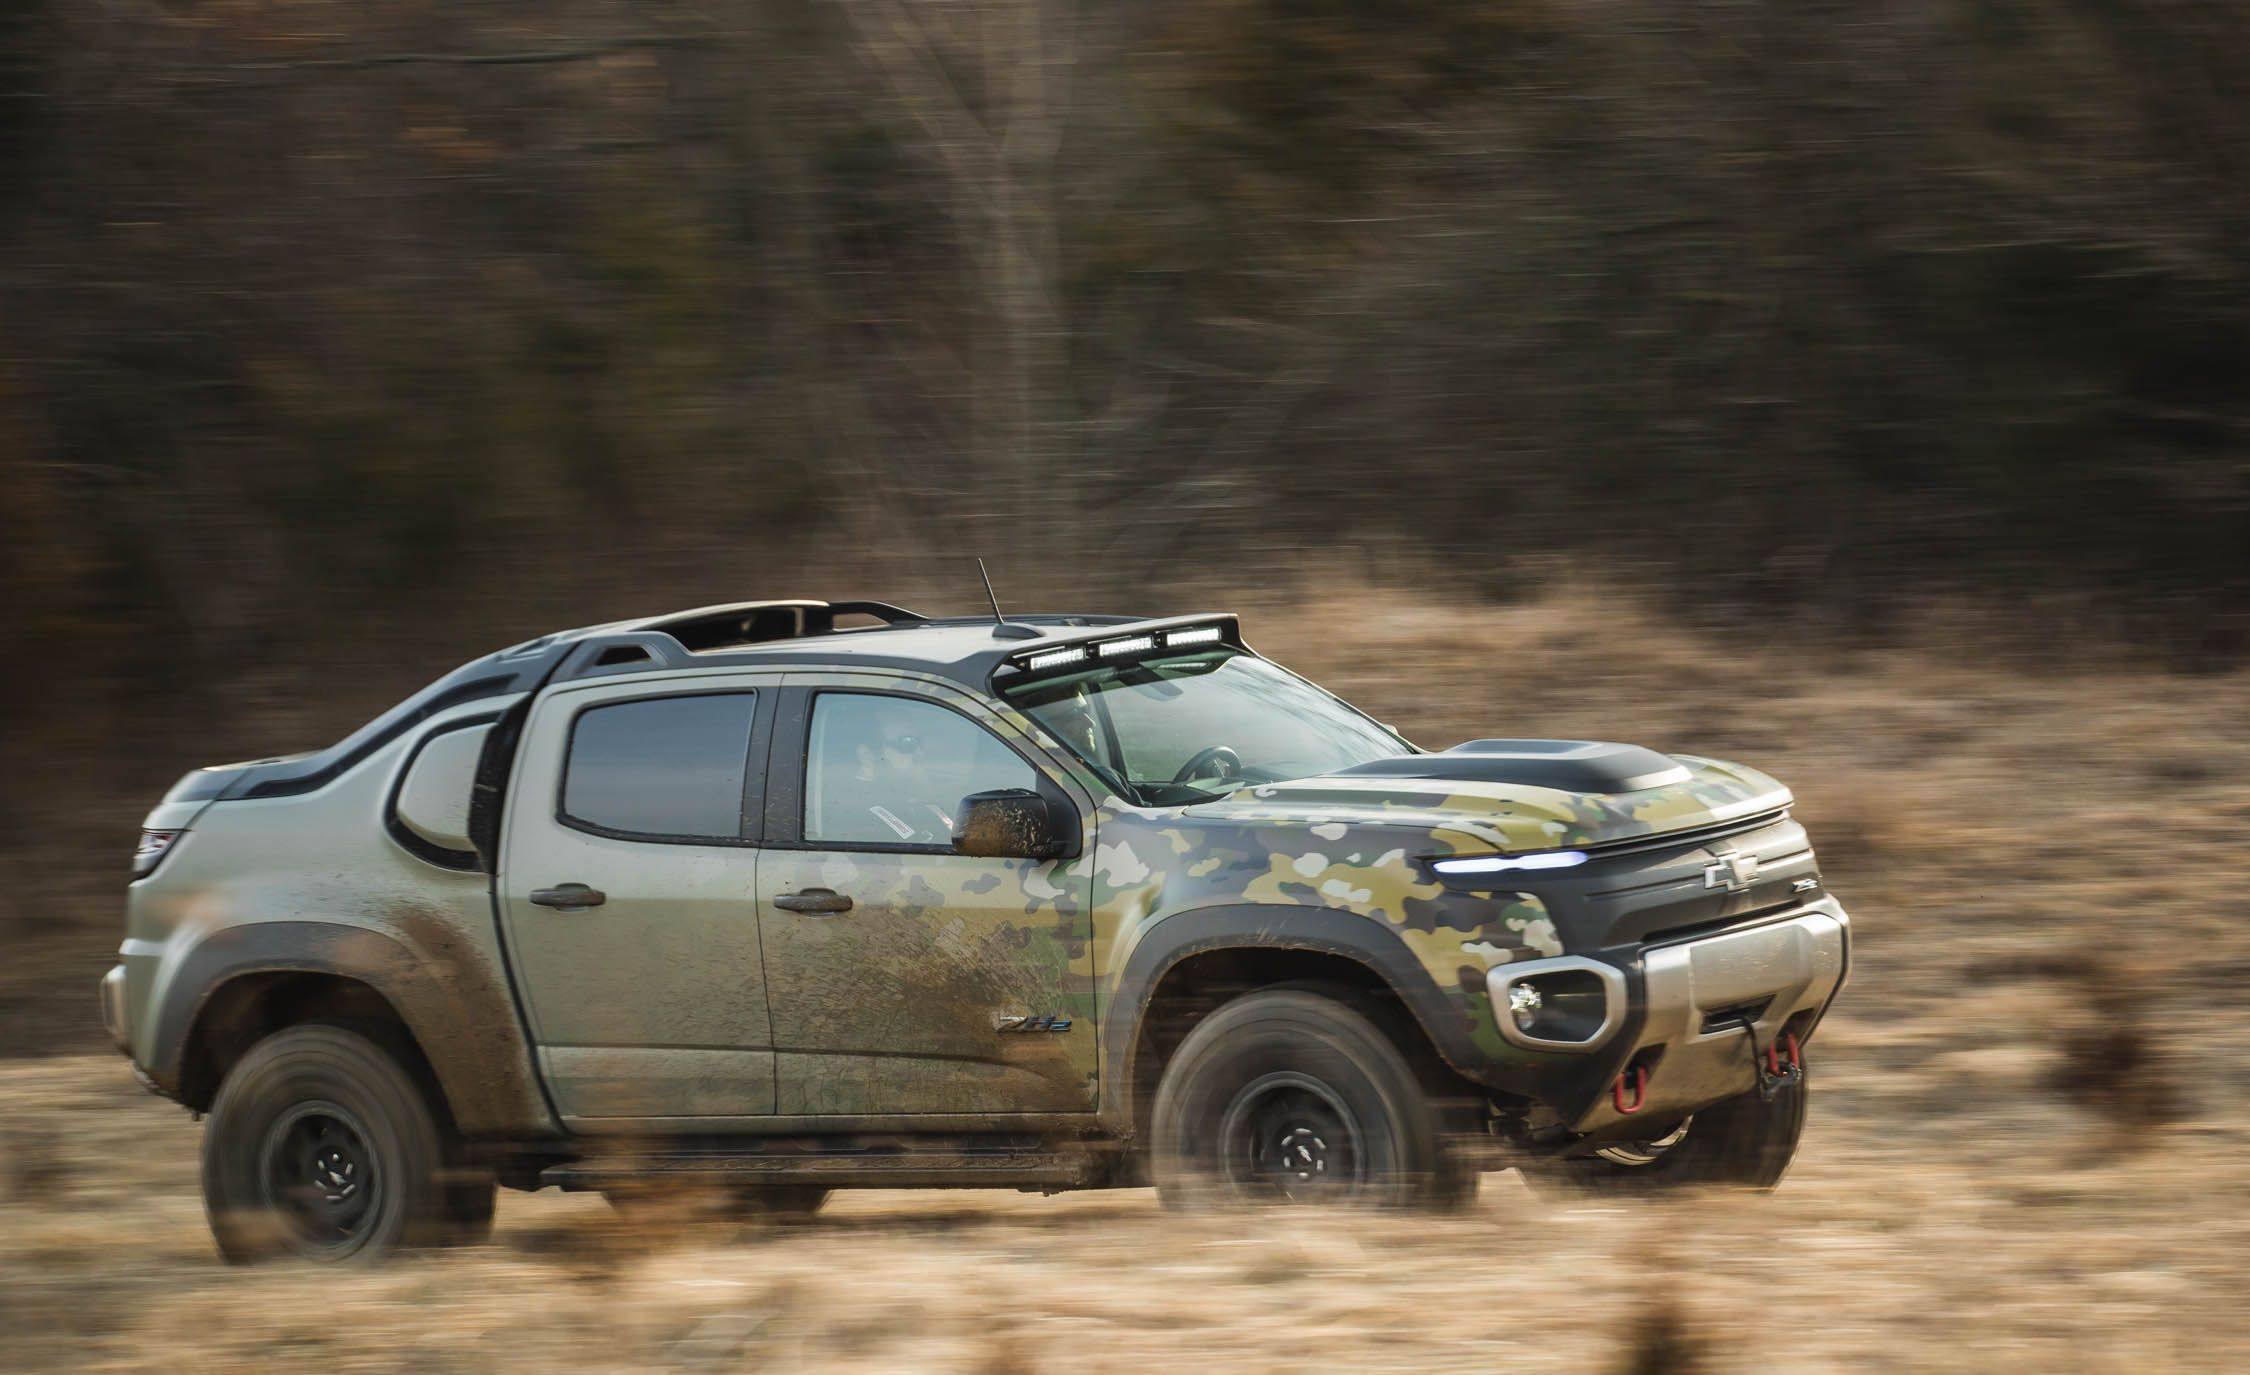 Chevy Colorado Zh2 Hybrid Hydrogen Fuel Cell Mil Vehicle